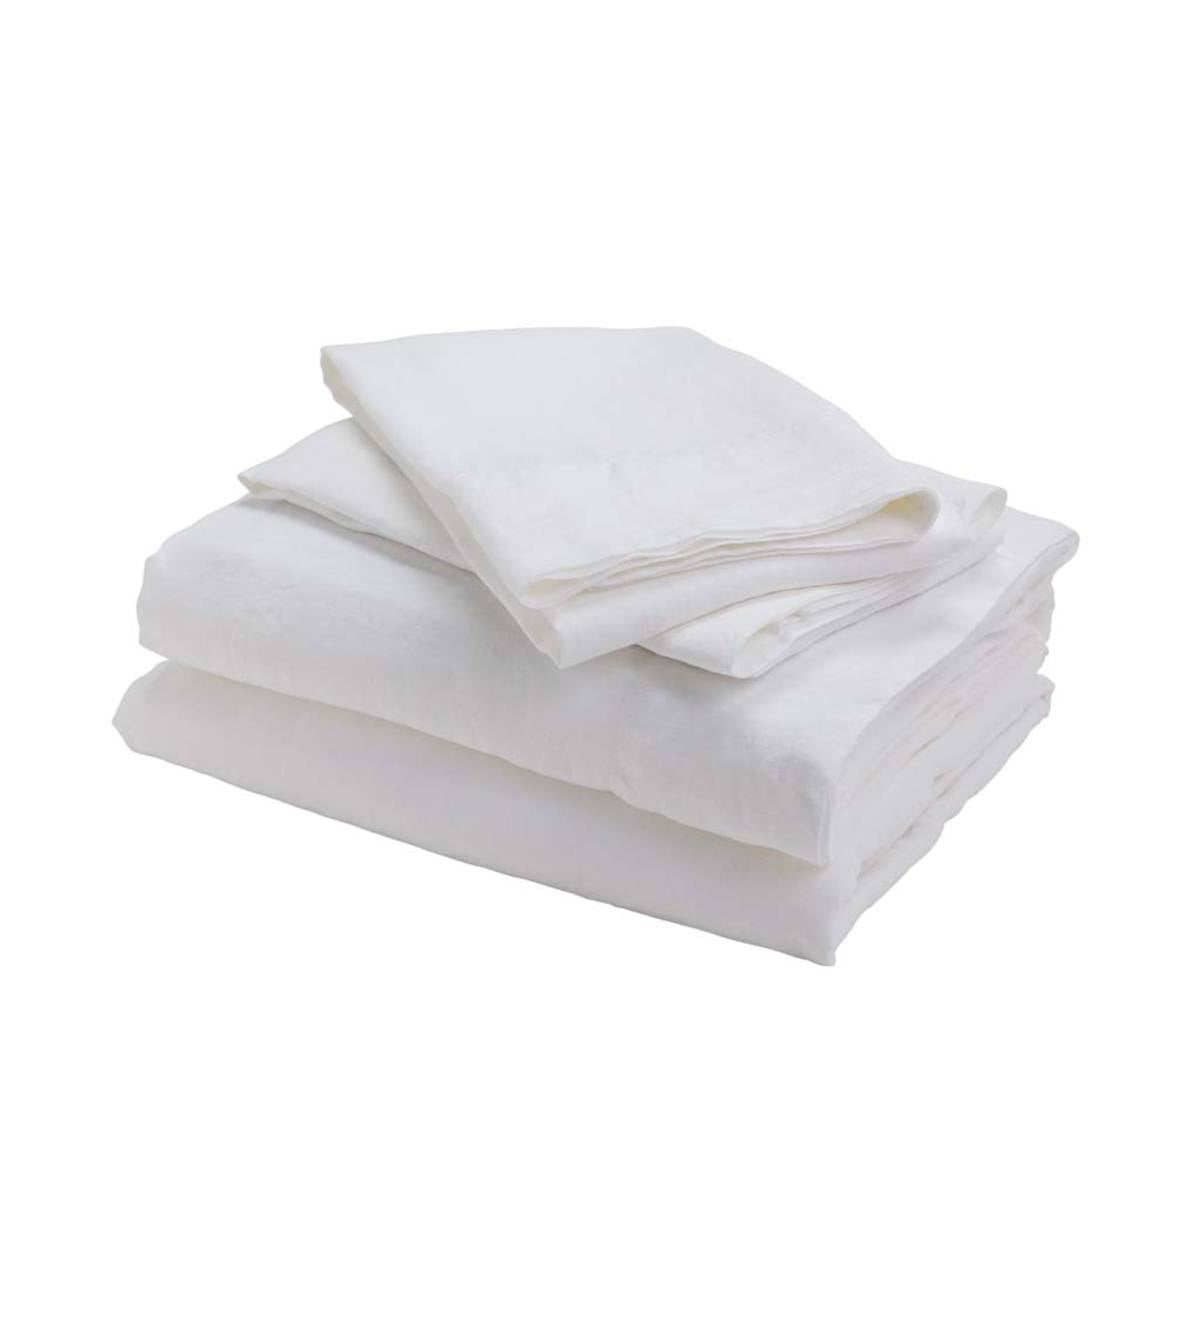 100% Pure Linen King Sheet Set  - Natural